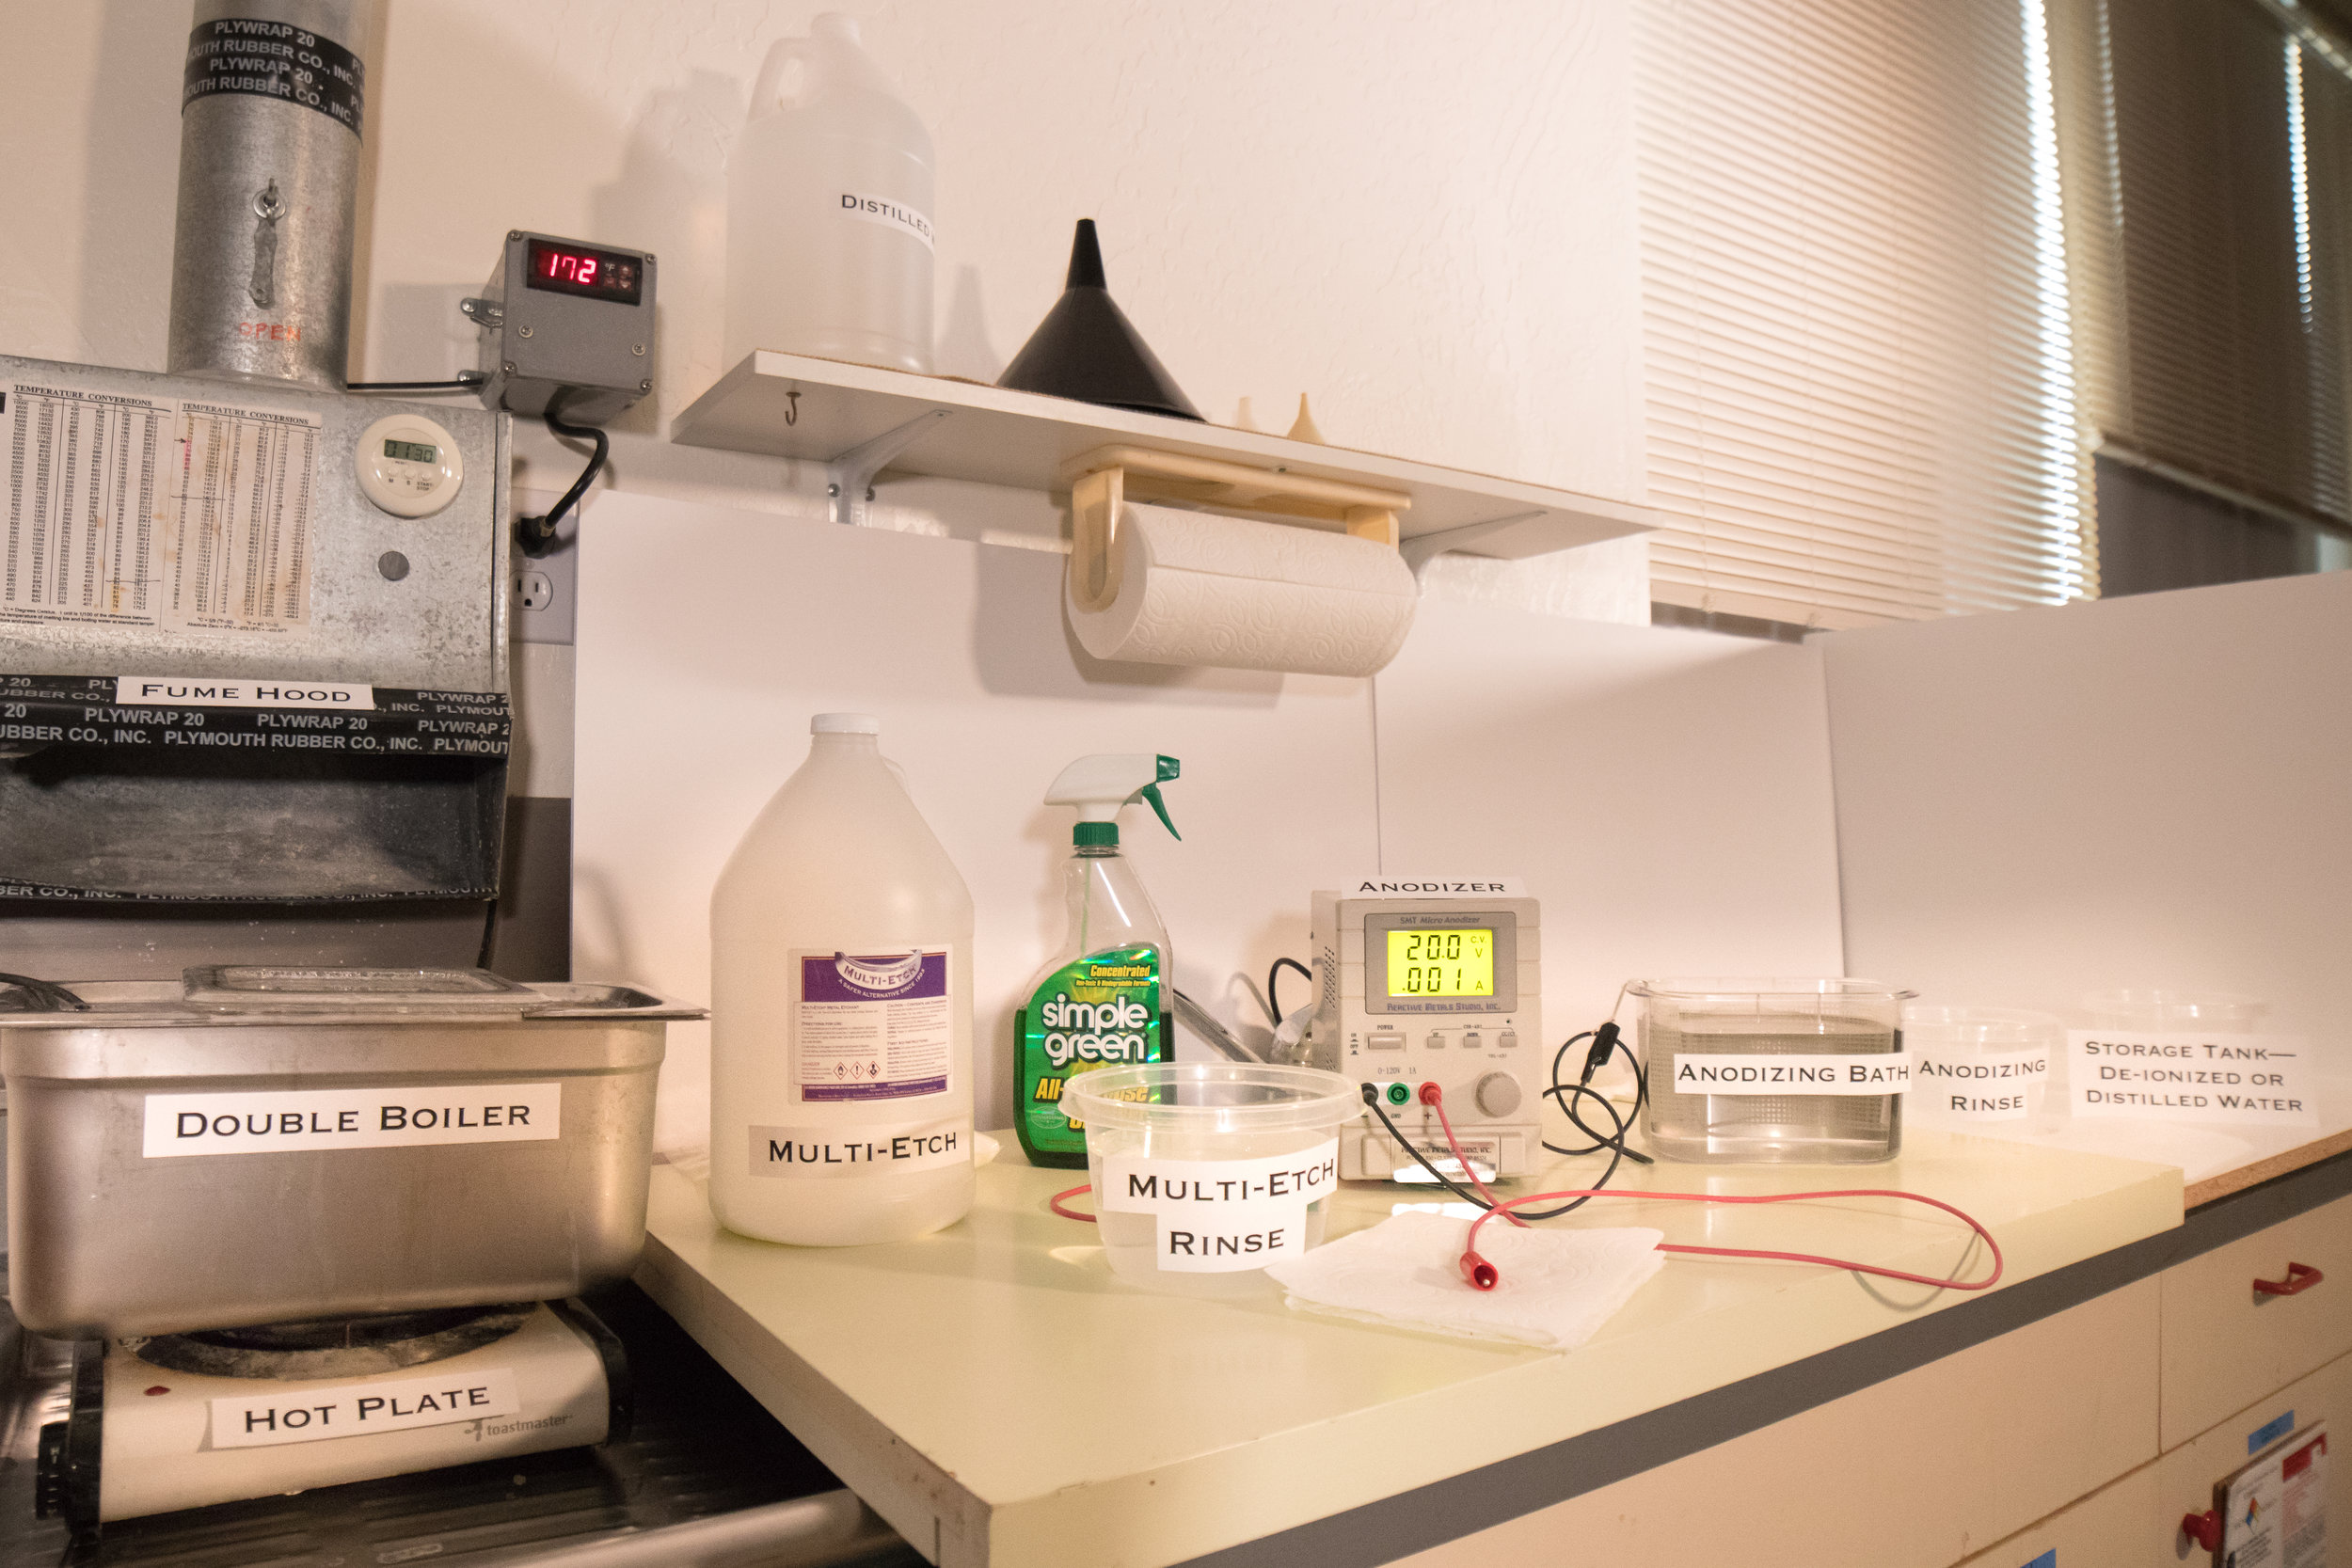 Laboratory set-up to use Multi-Etch heateed